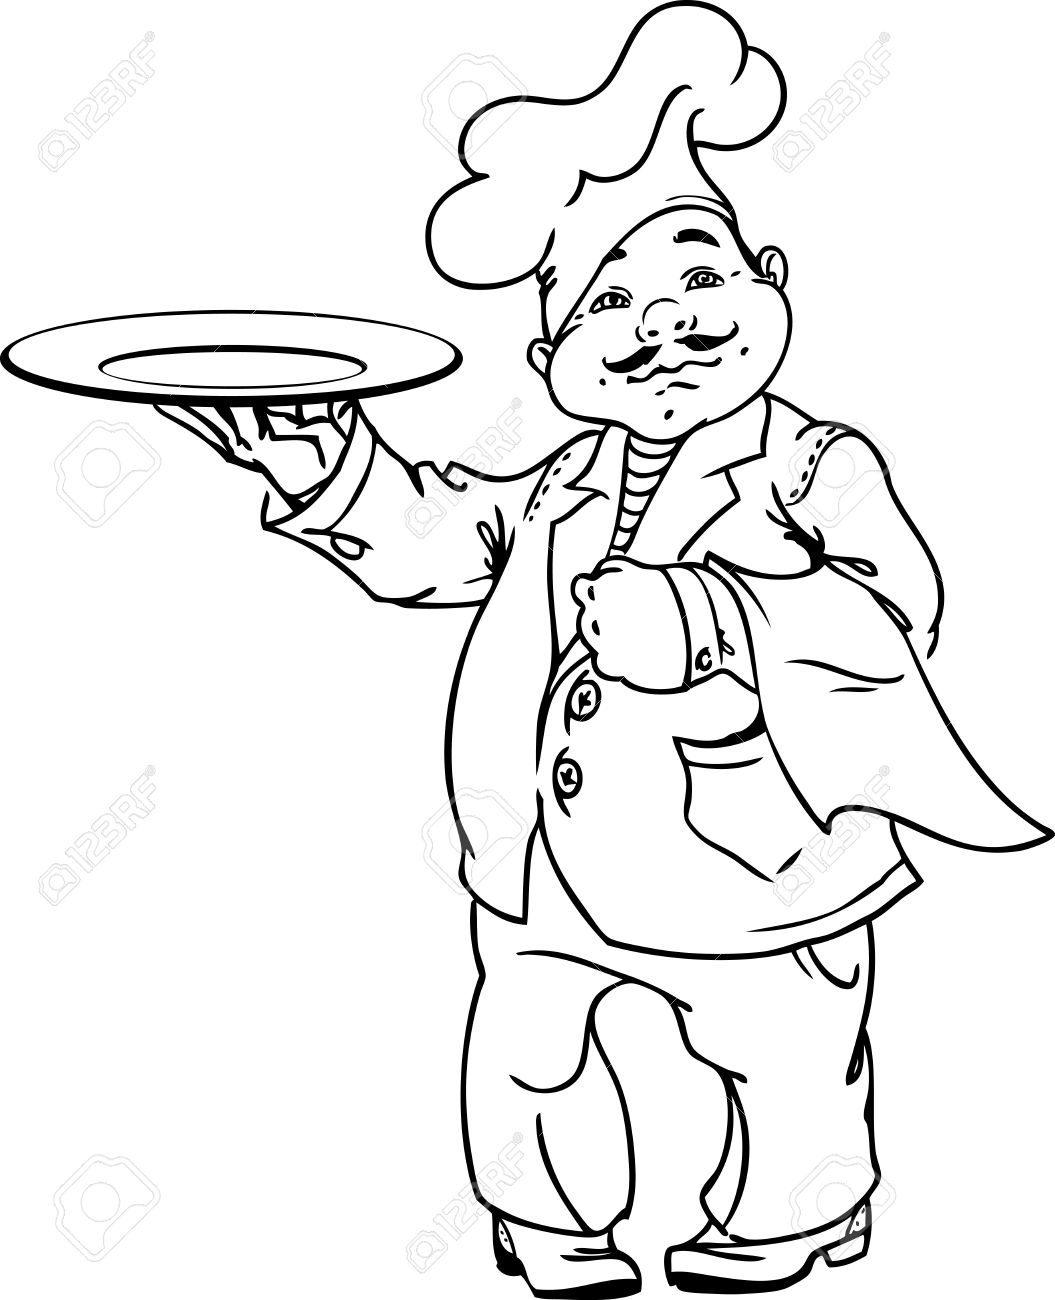 1055x1300 Cute Italian Chef With An Dish In Black And White For Coloring